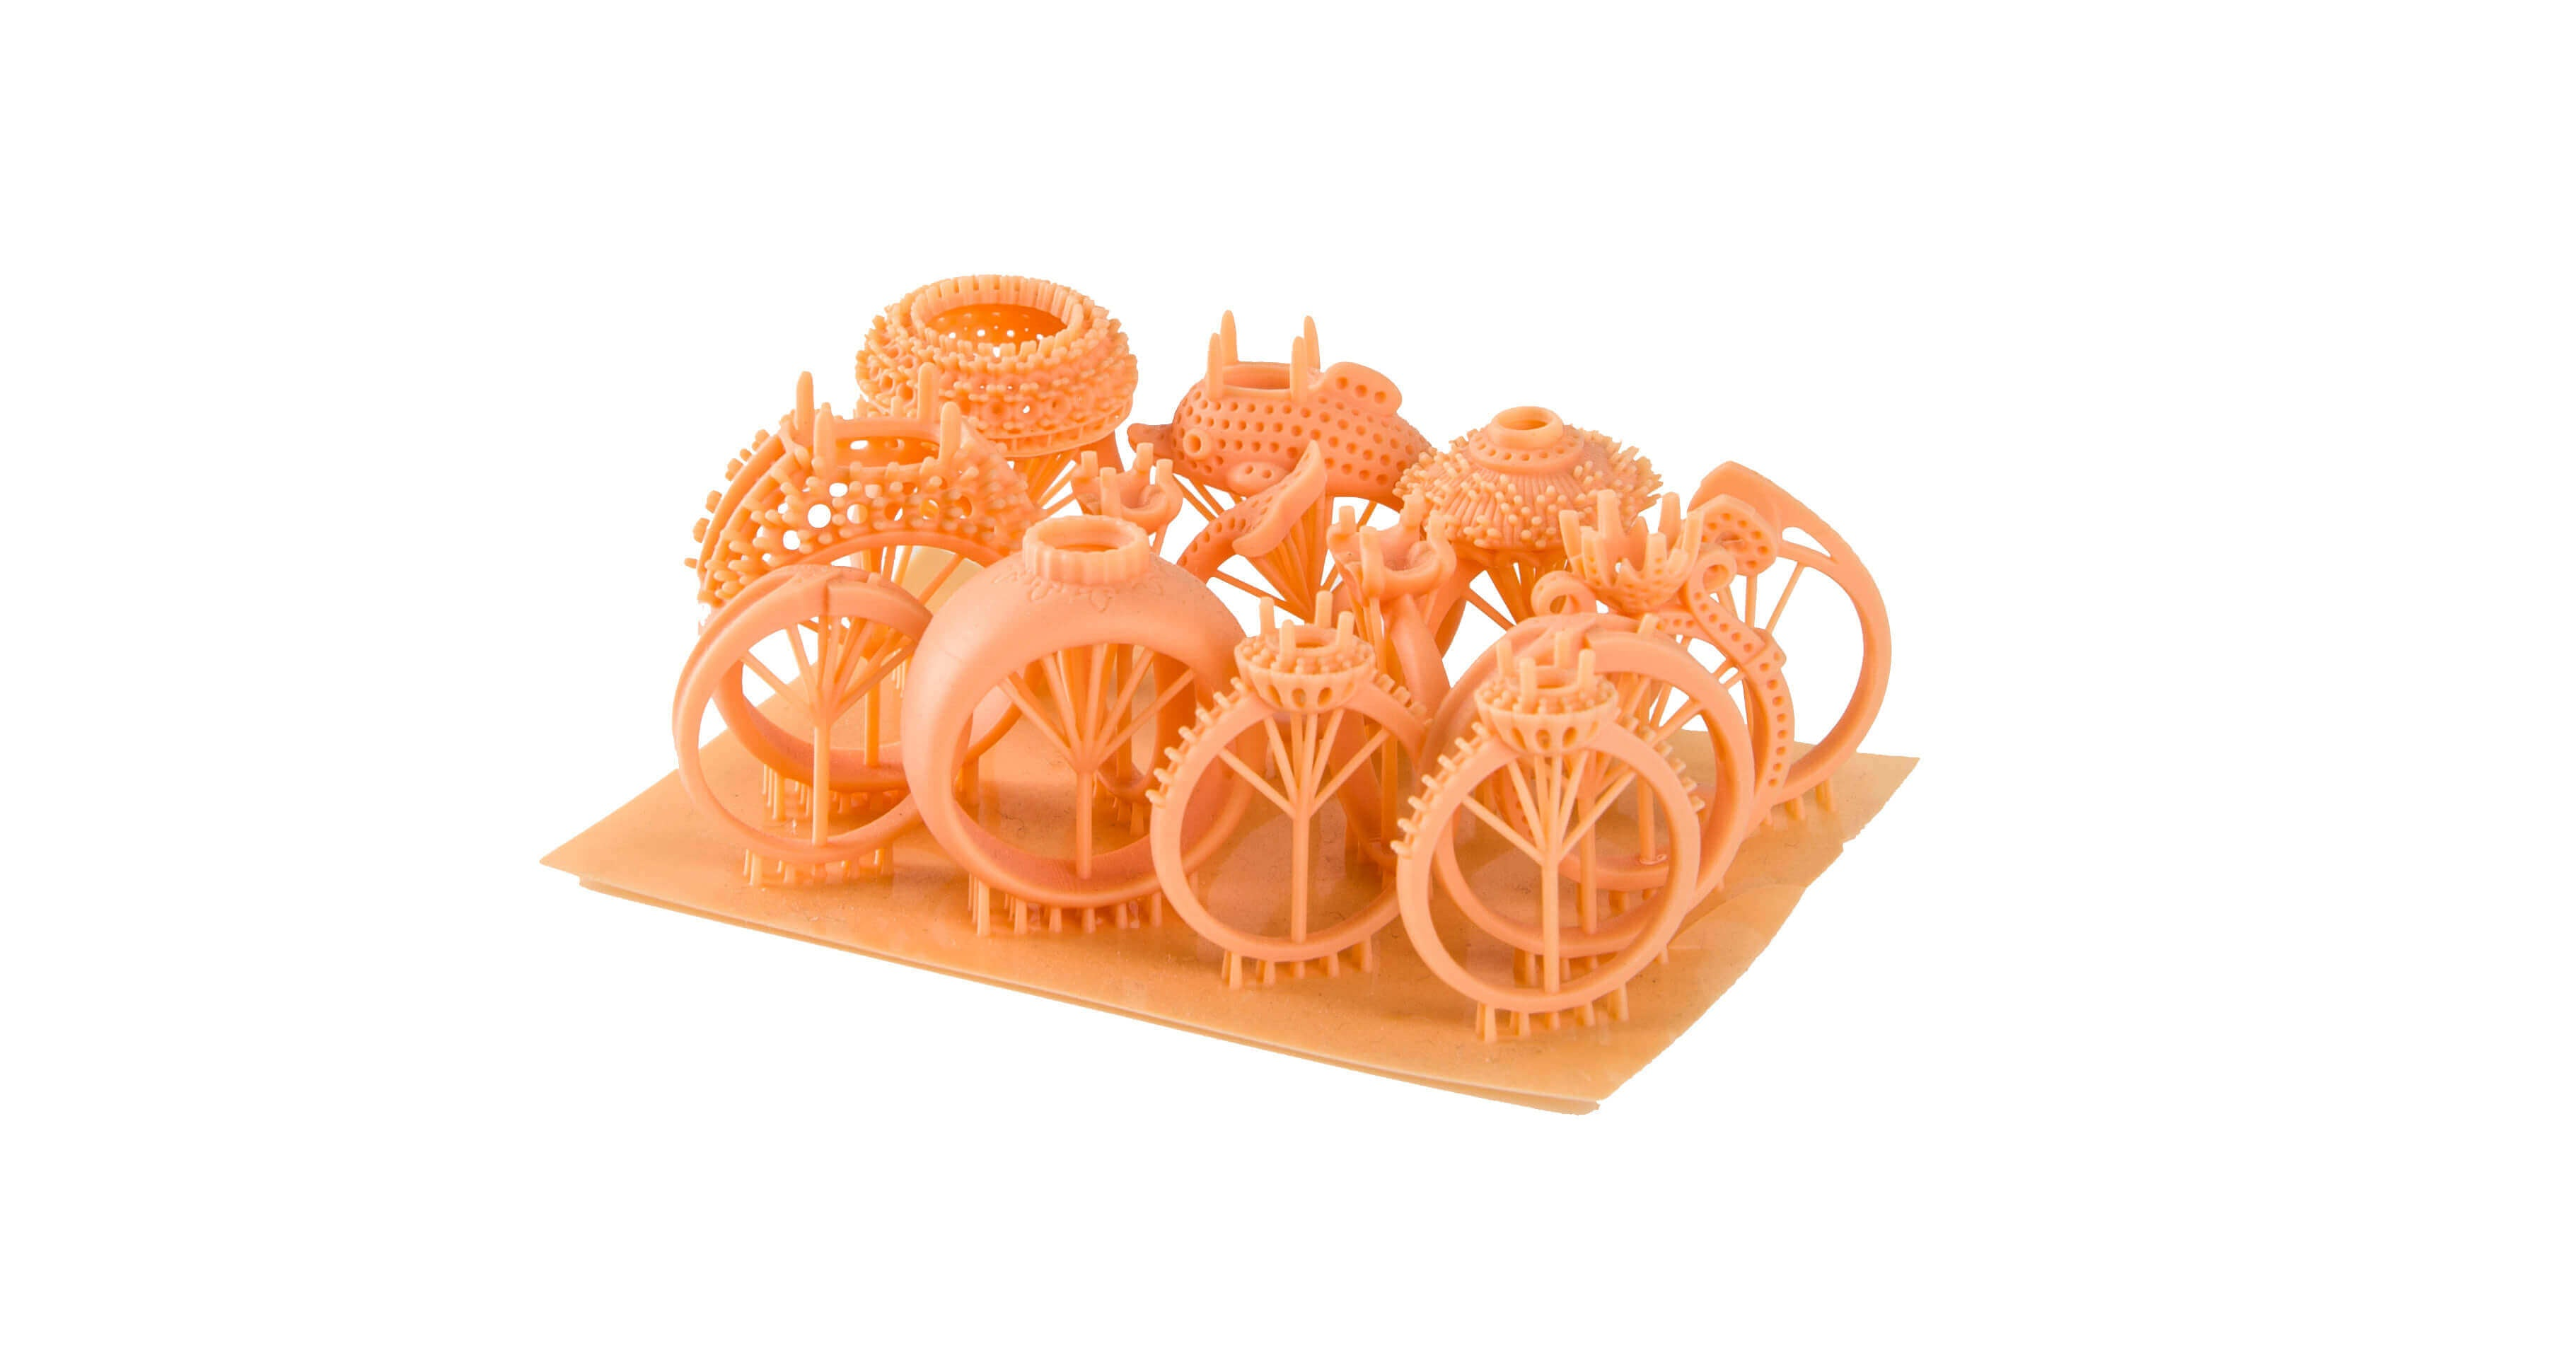 creality-3D-printer-collision-between-jewelry-design-and-3D-printing-04